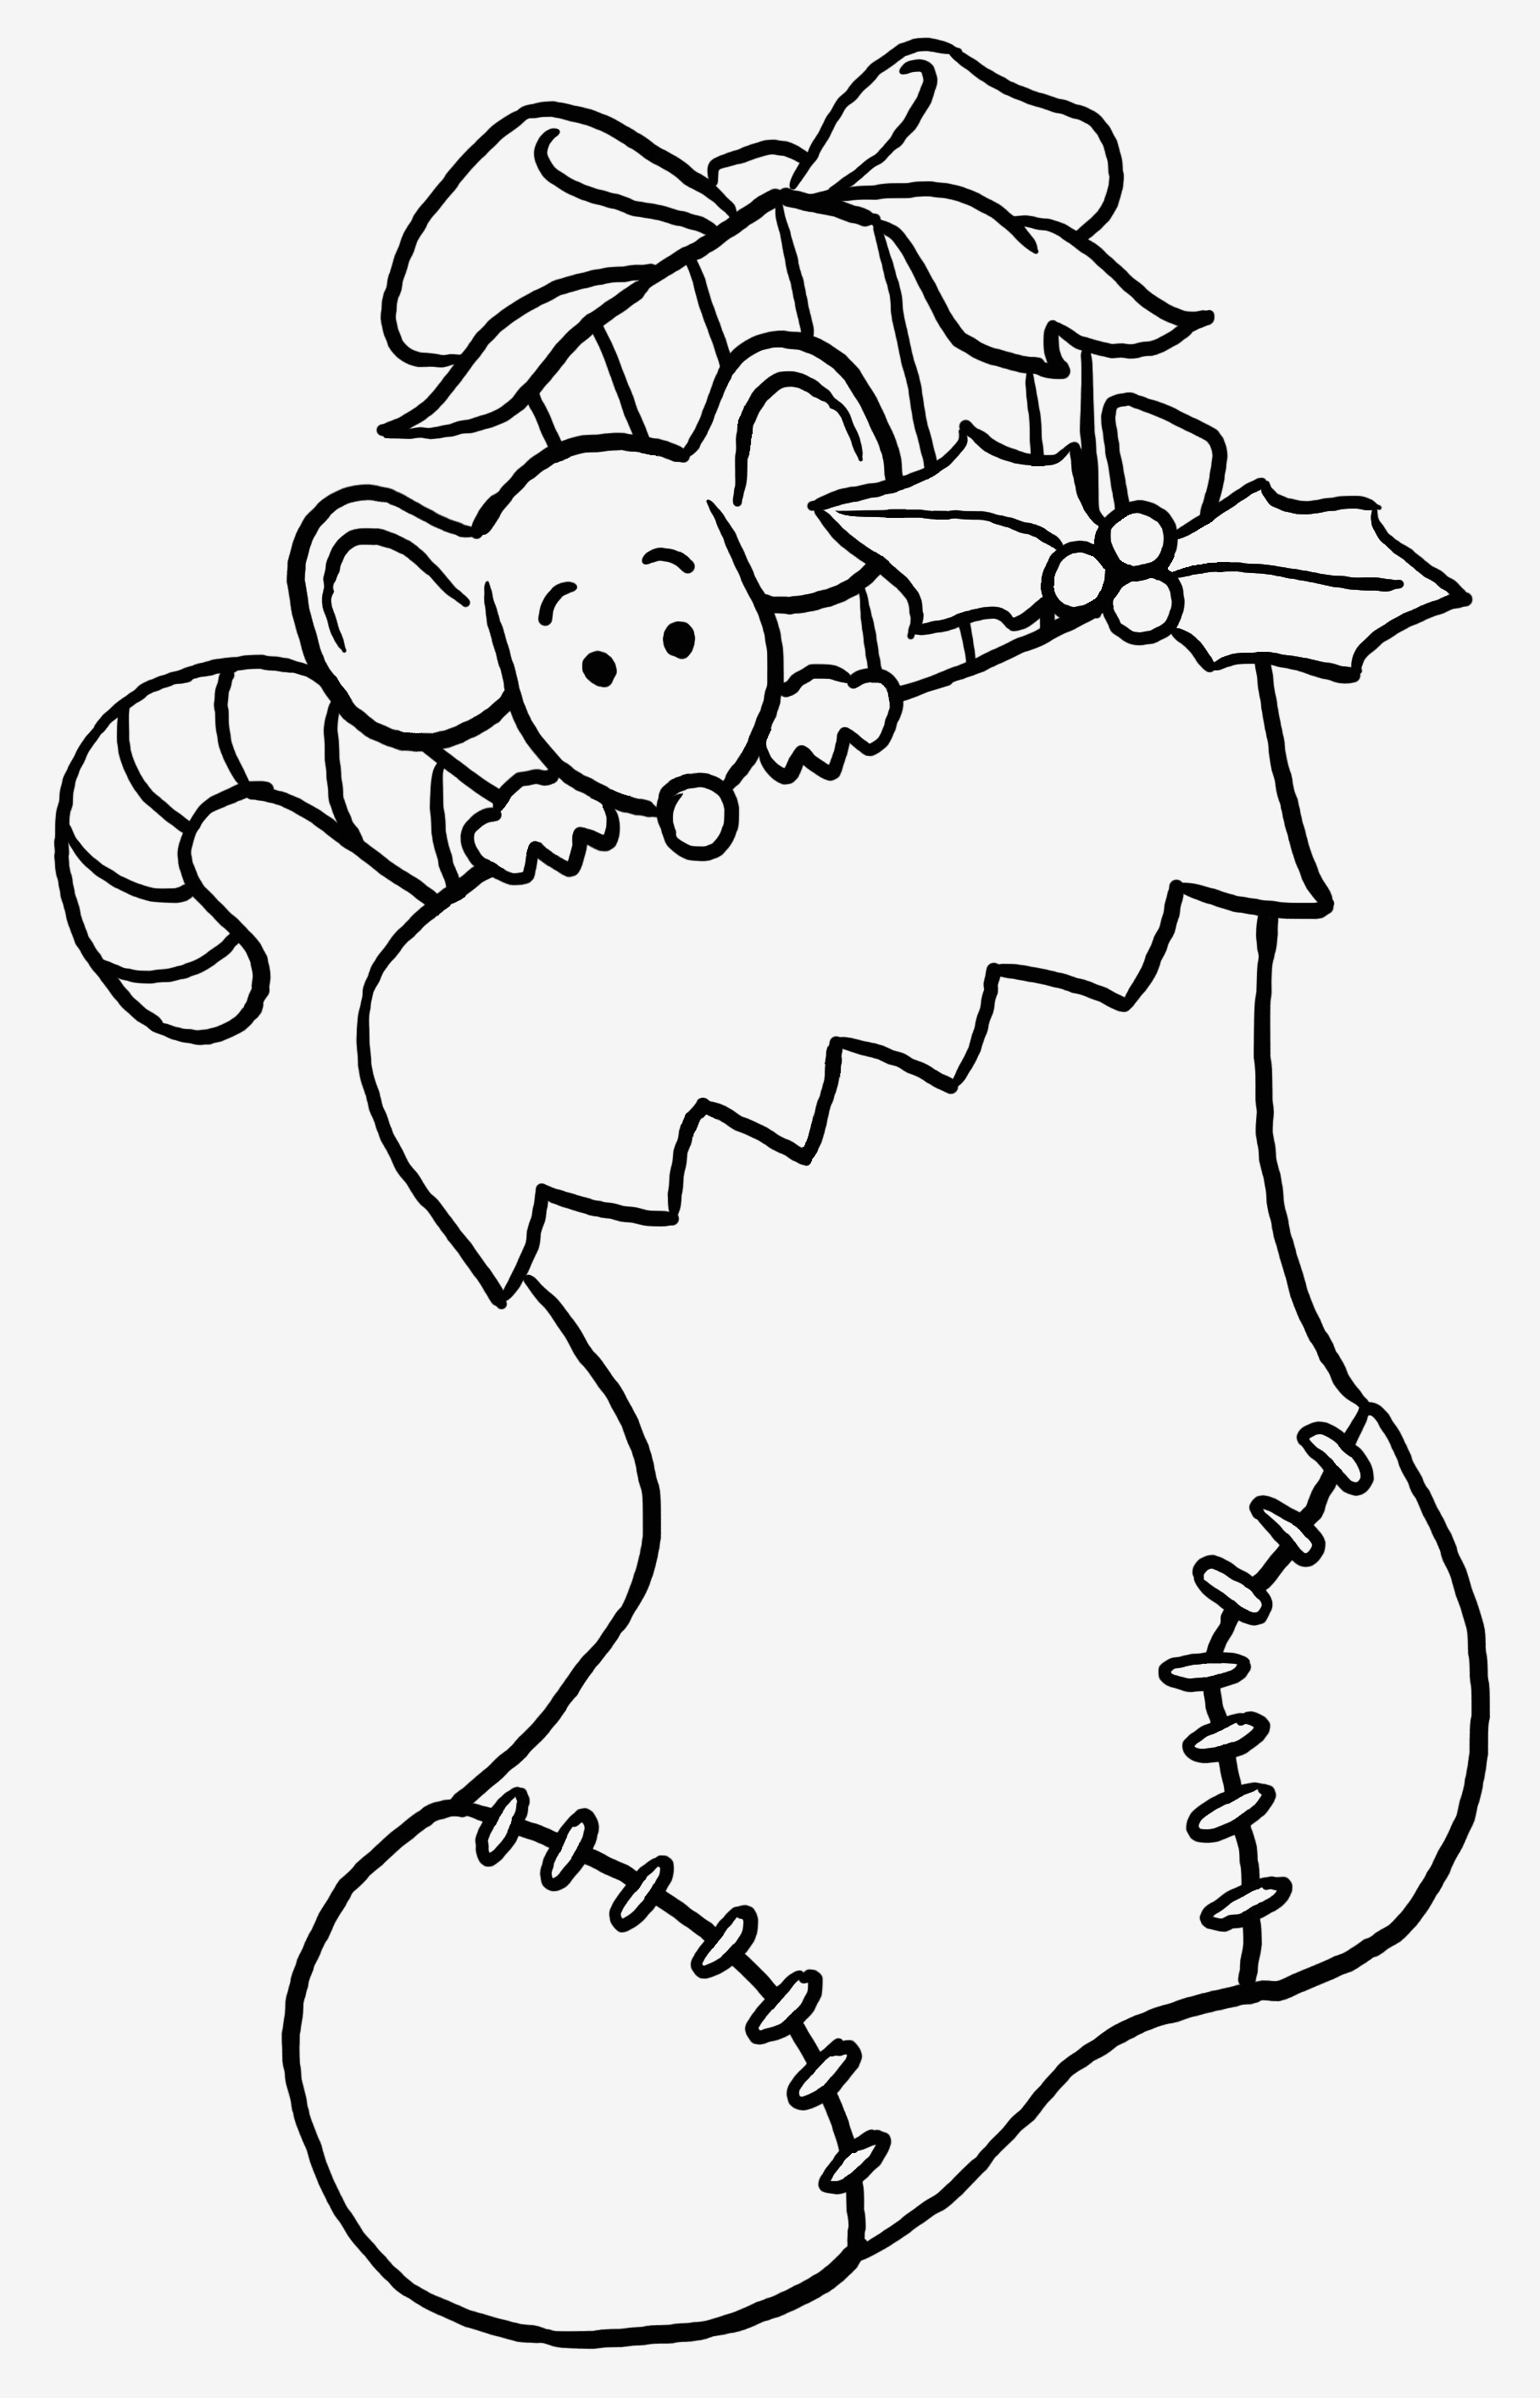 Coloring Pages: Easy Coloring Christmas Printable For Kids Simple - Xmas Coloring Pages Free Printable